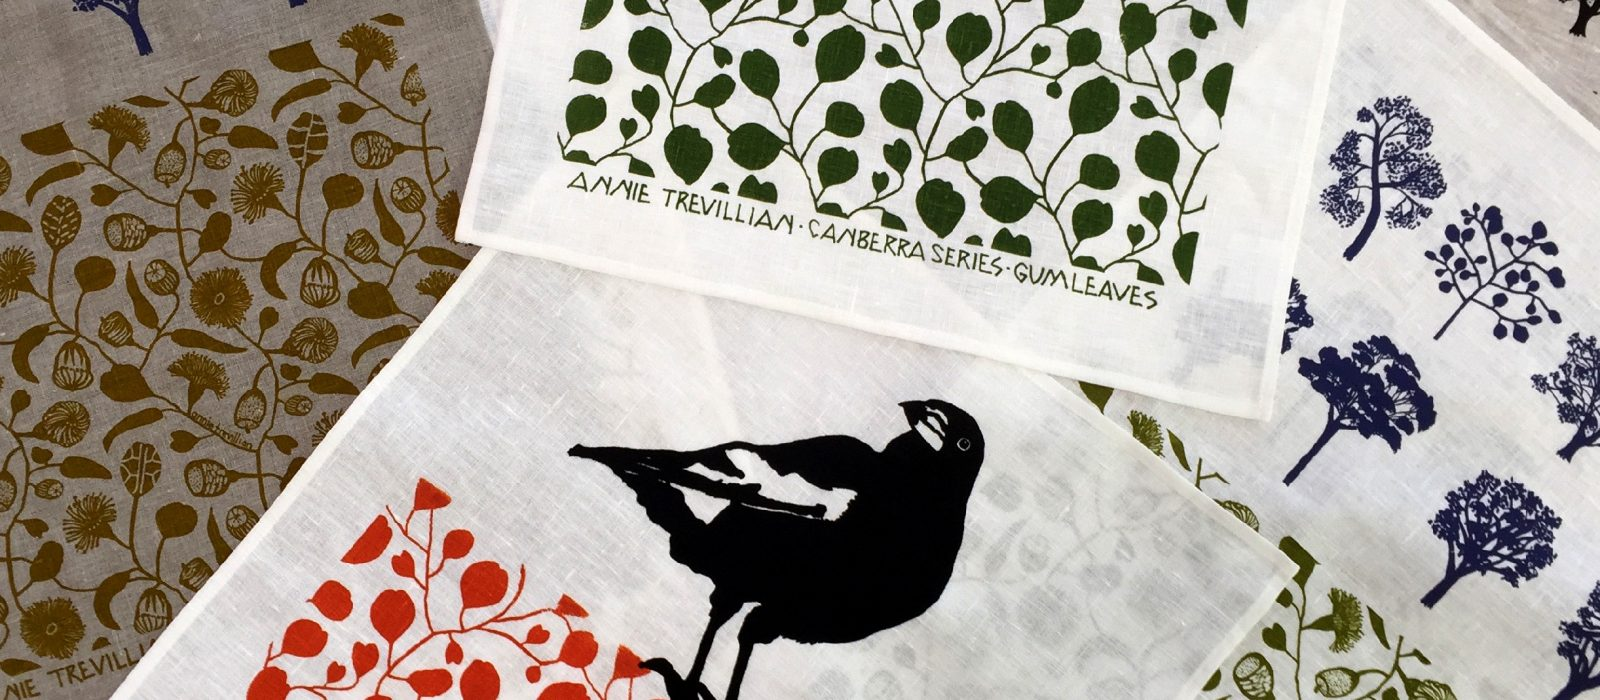 Annie Trevillian, screen printed tea towels. Photo: Courtesy of the artist.